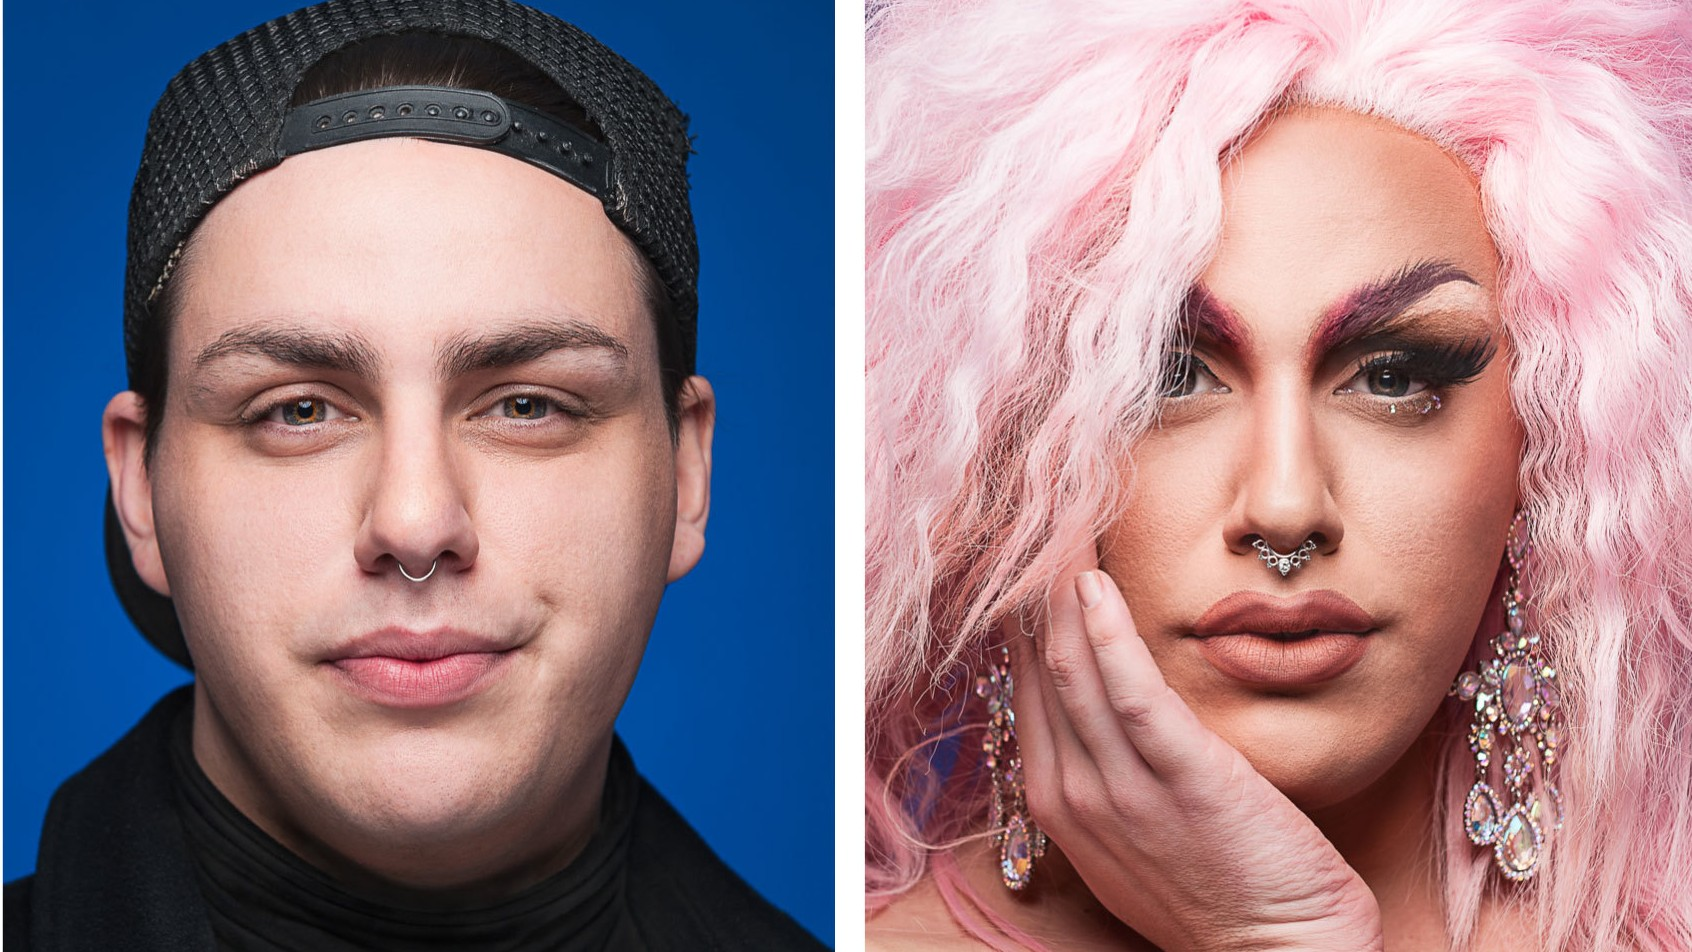 Mesmerizing Before and After Photos of Drag Transformations